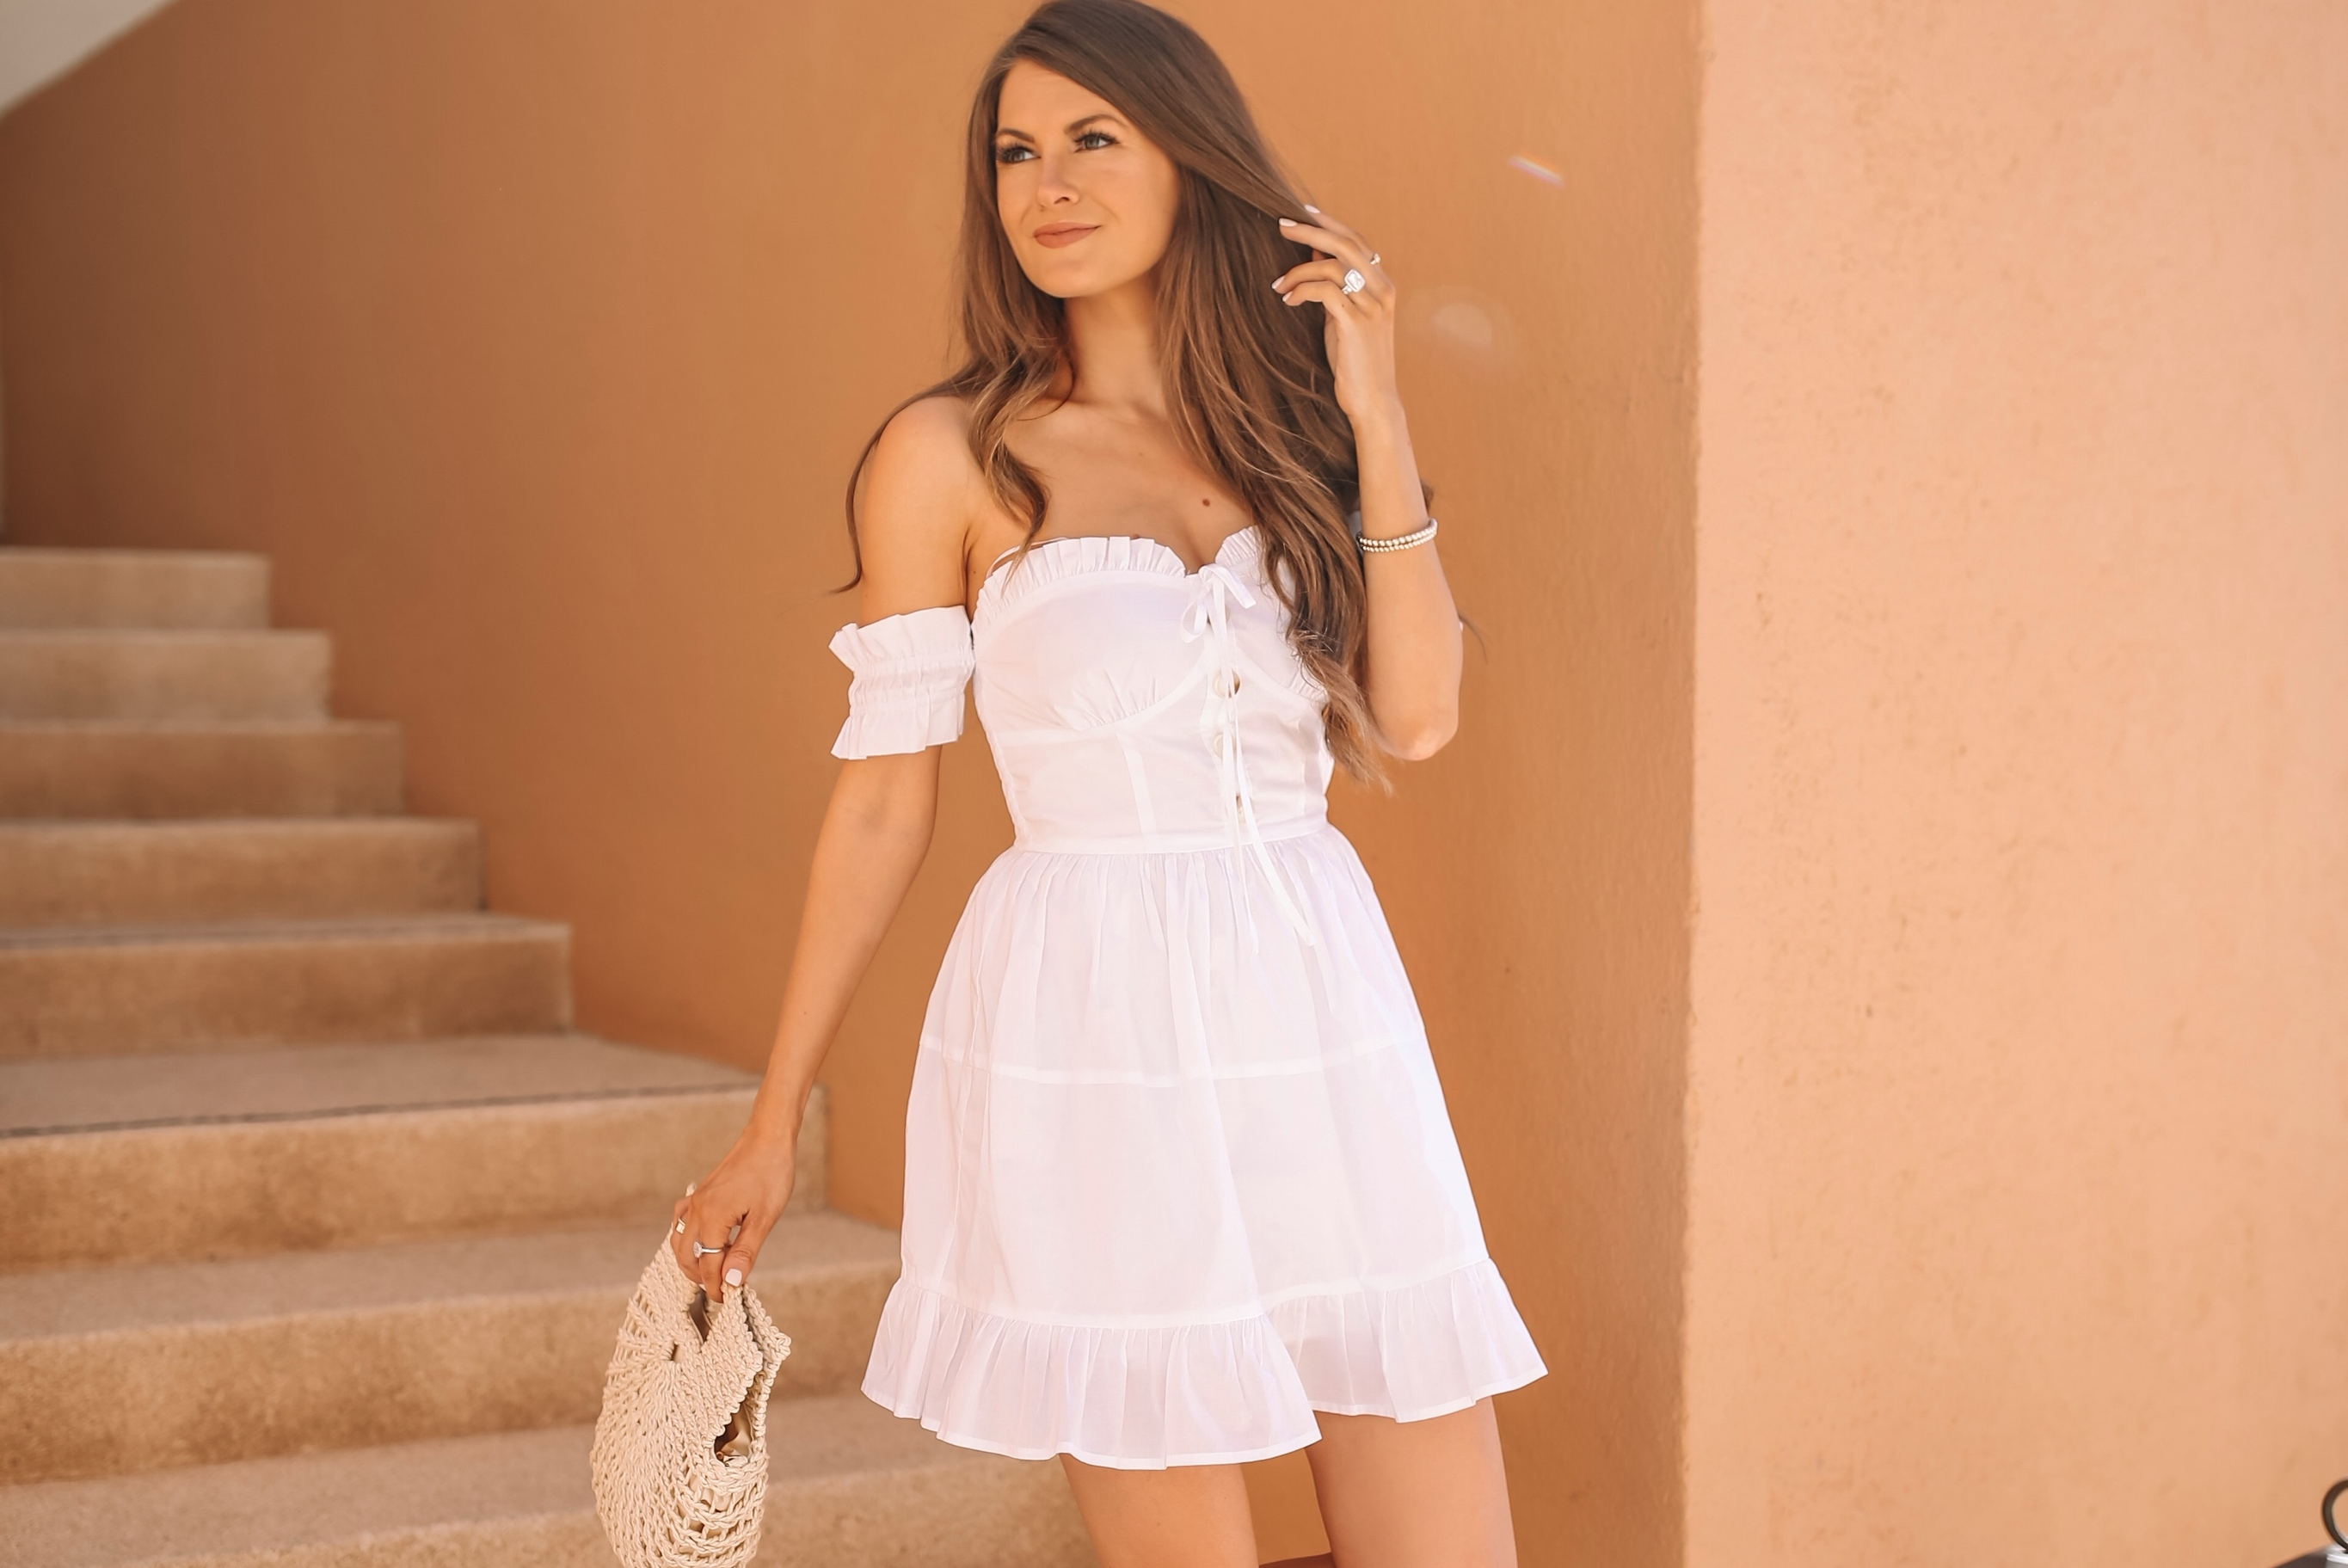 The Mykonos dress from Caitlin Covington x Pink Lily.